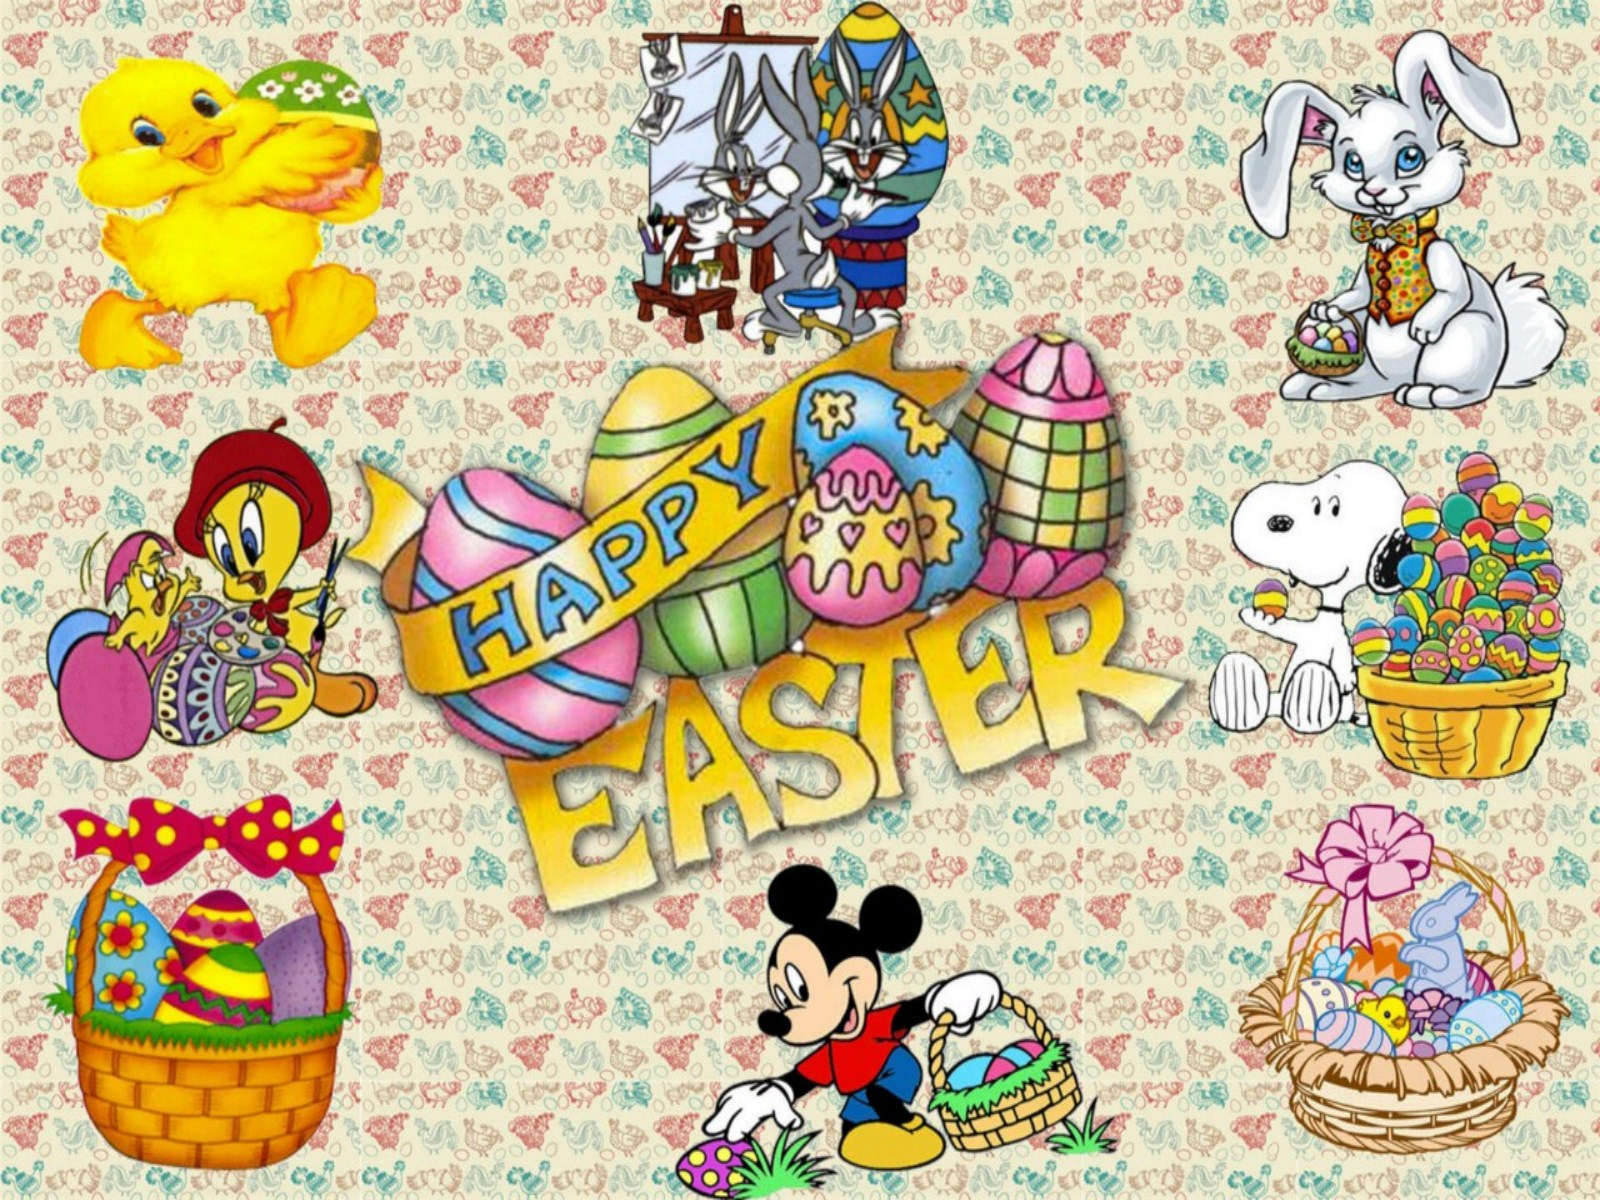 download disney easter wallpaper which is under the easter wallpapers 1600x1200